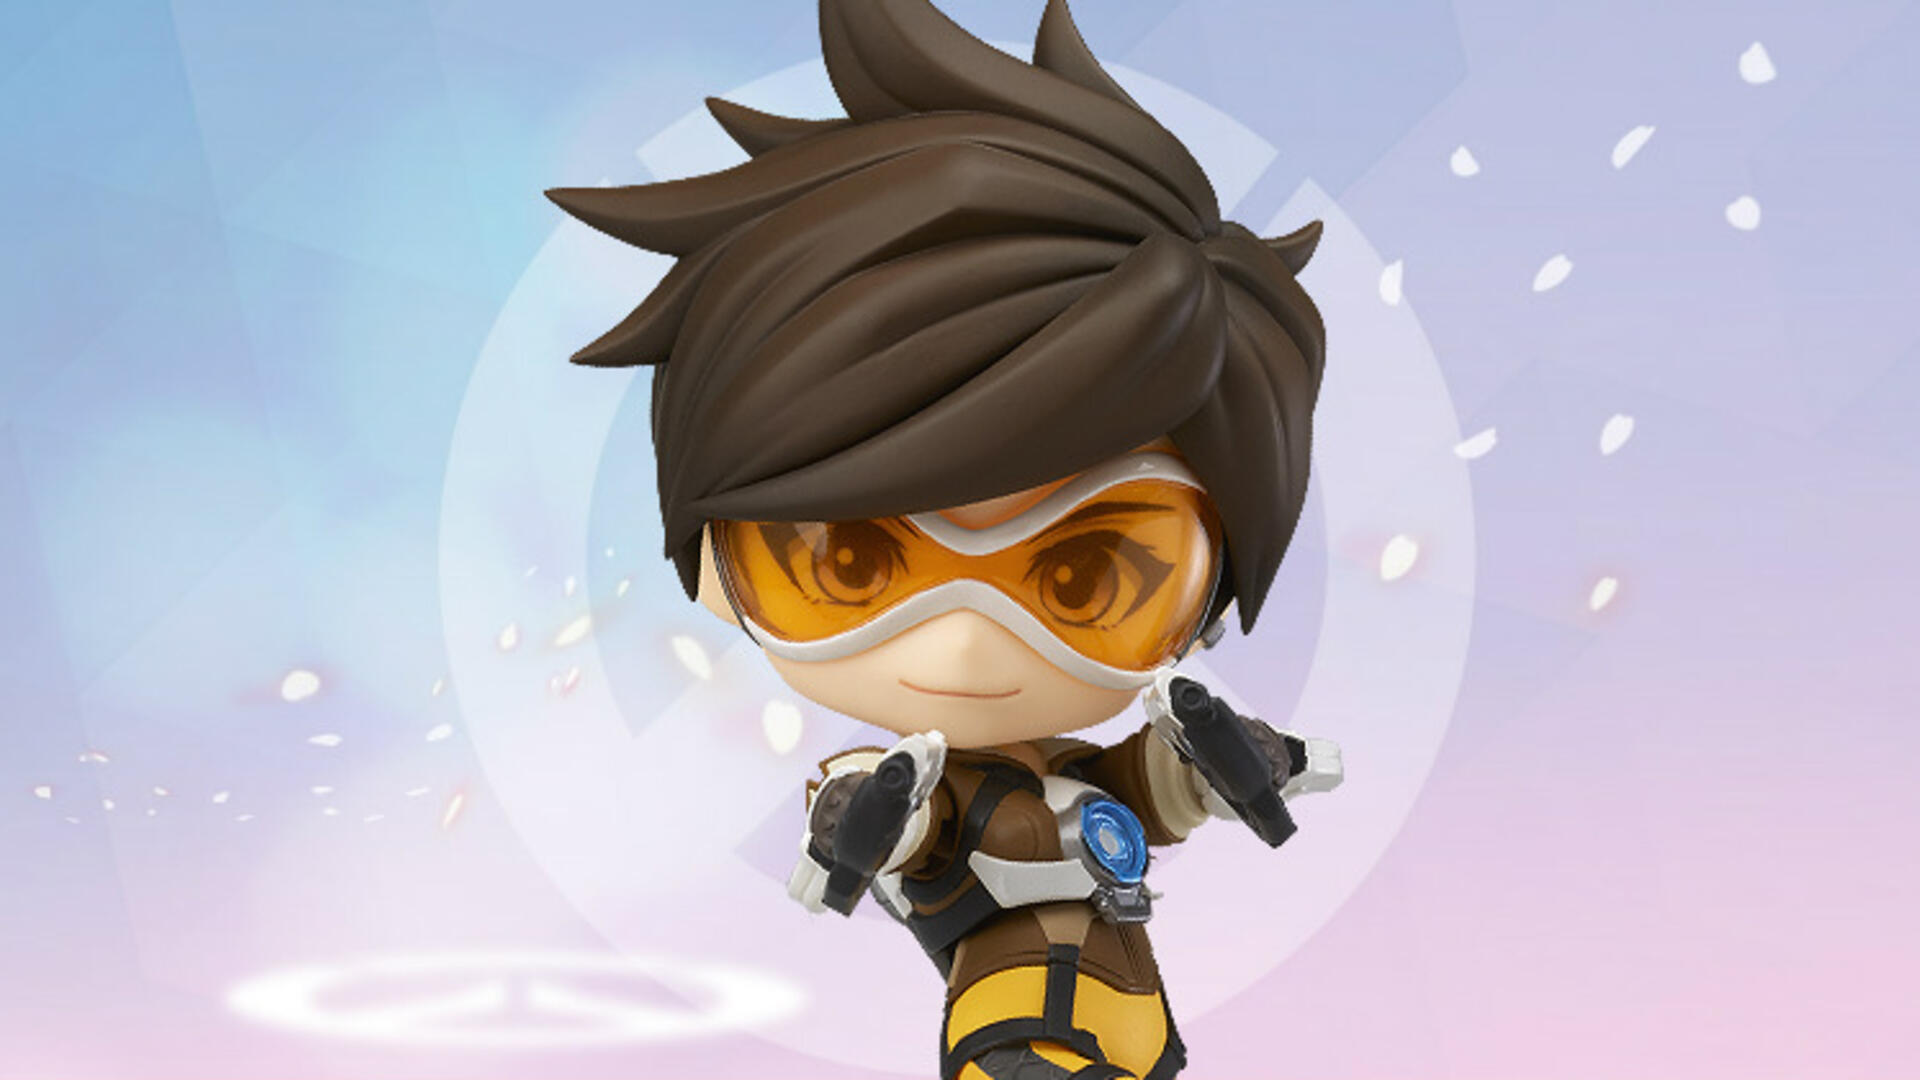 Overwatch's Tracer Gets The Adorable Nendoroid Treatment